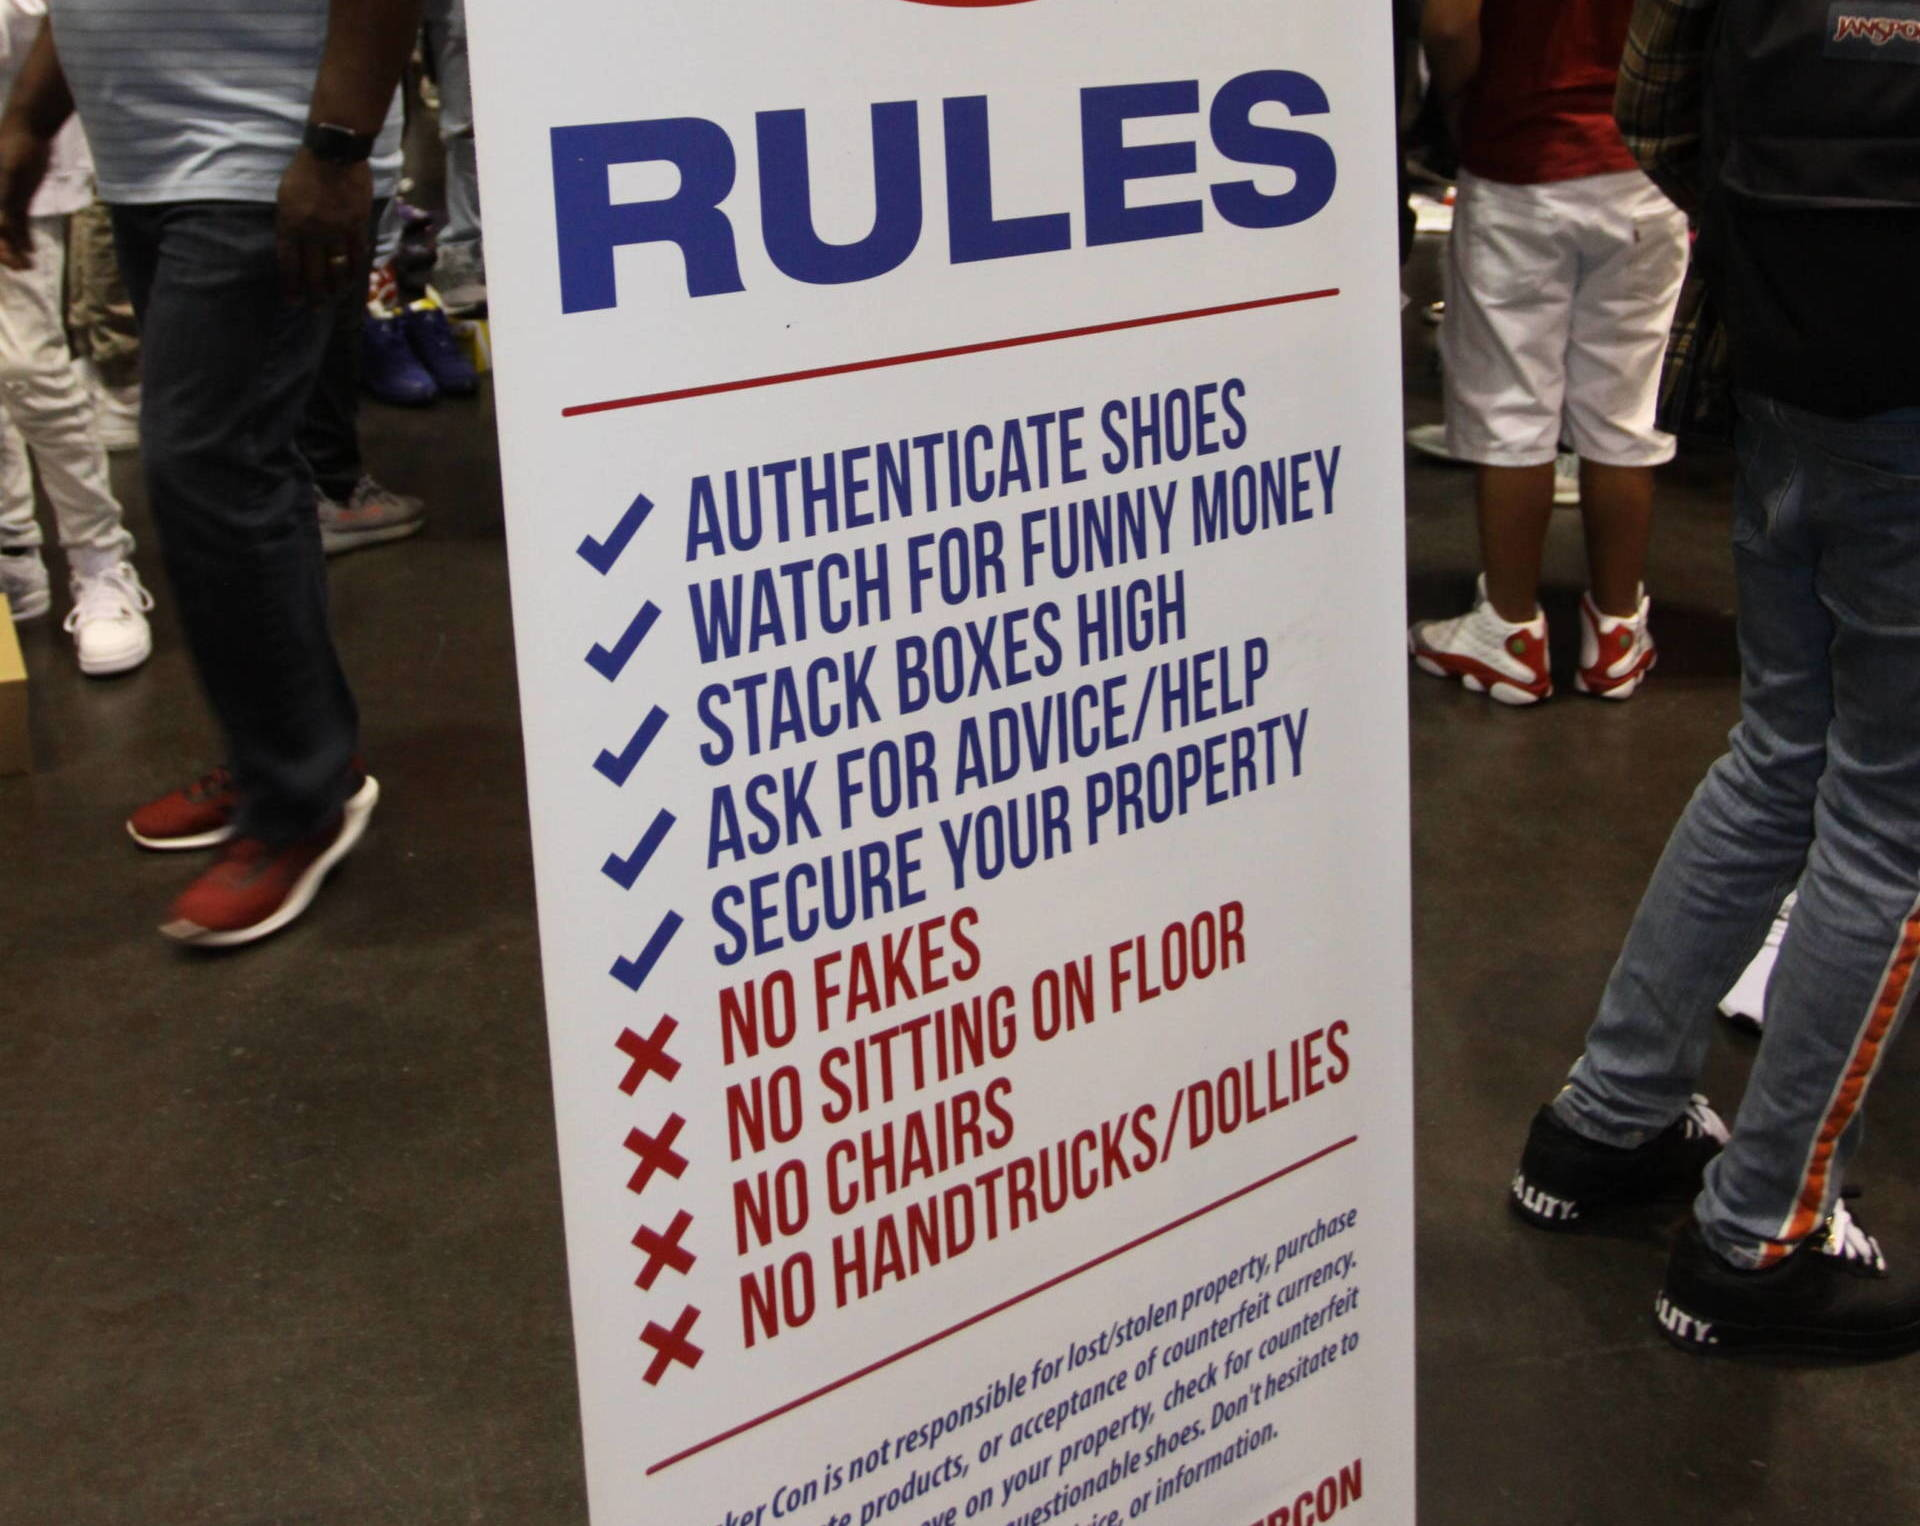 Buyers and sellers can set up informal displays on the floor of the Sneaker Con Trading Pit. This sign lays down some ground rules.